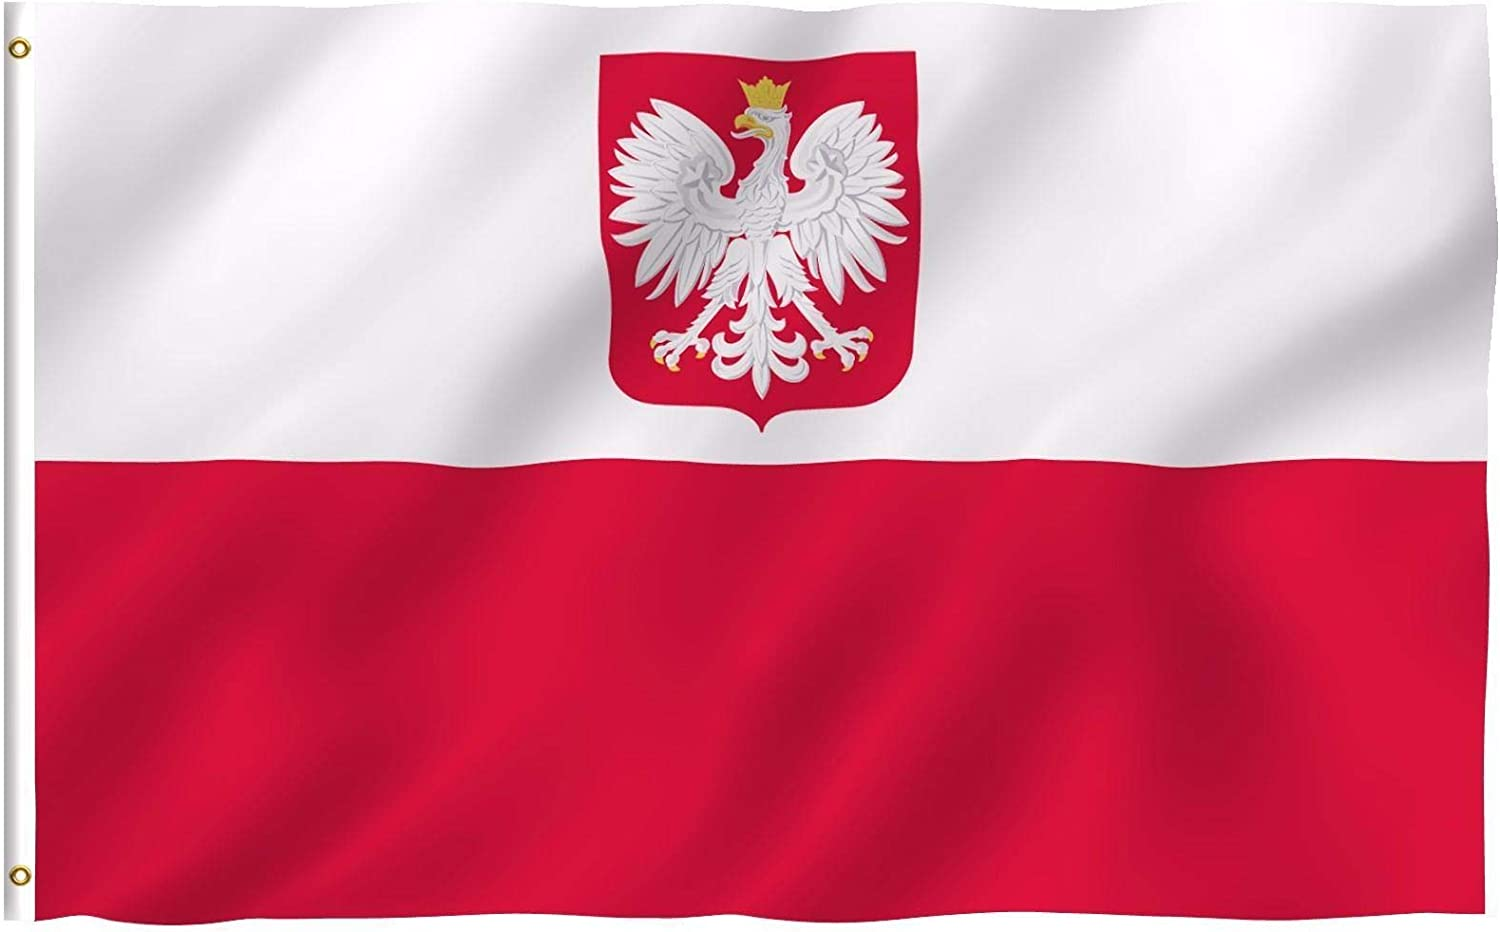 Image result for image, photo, flag of poland